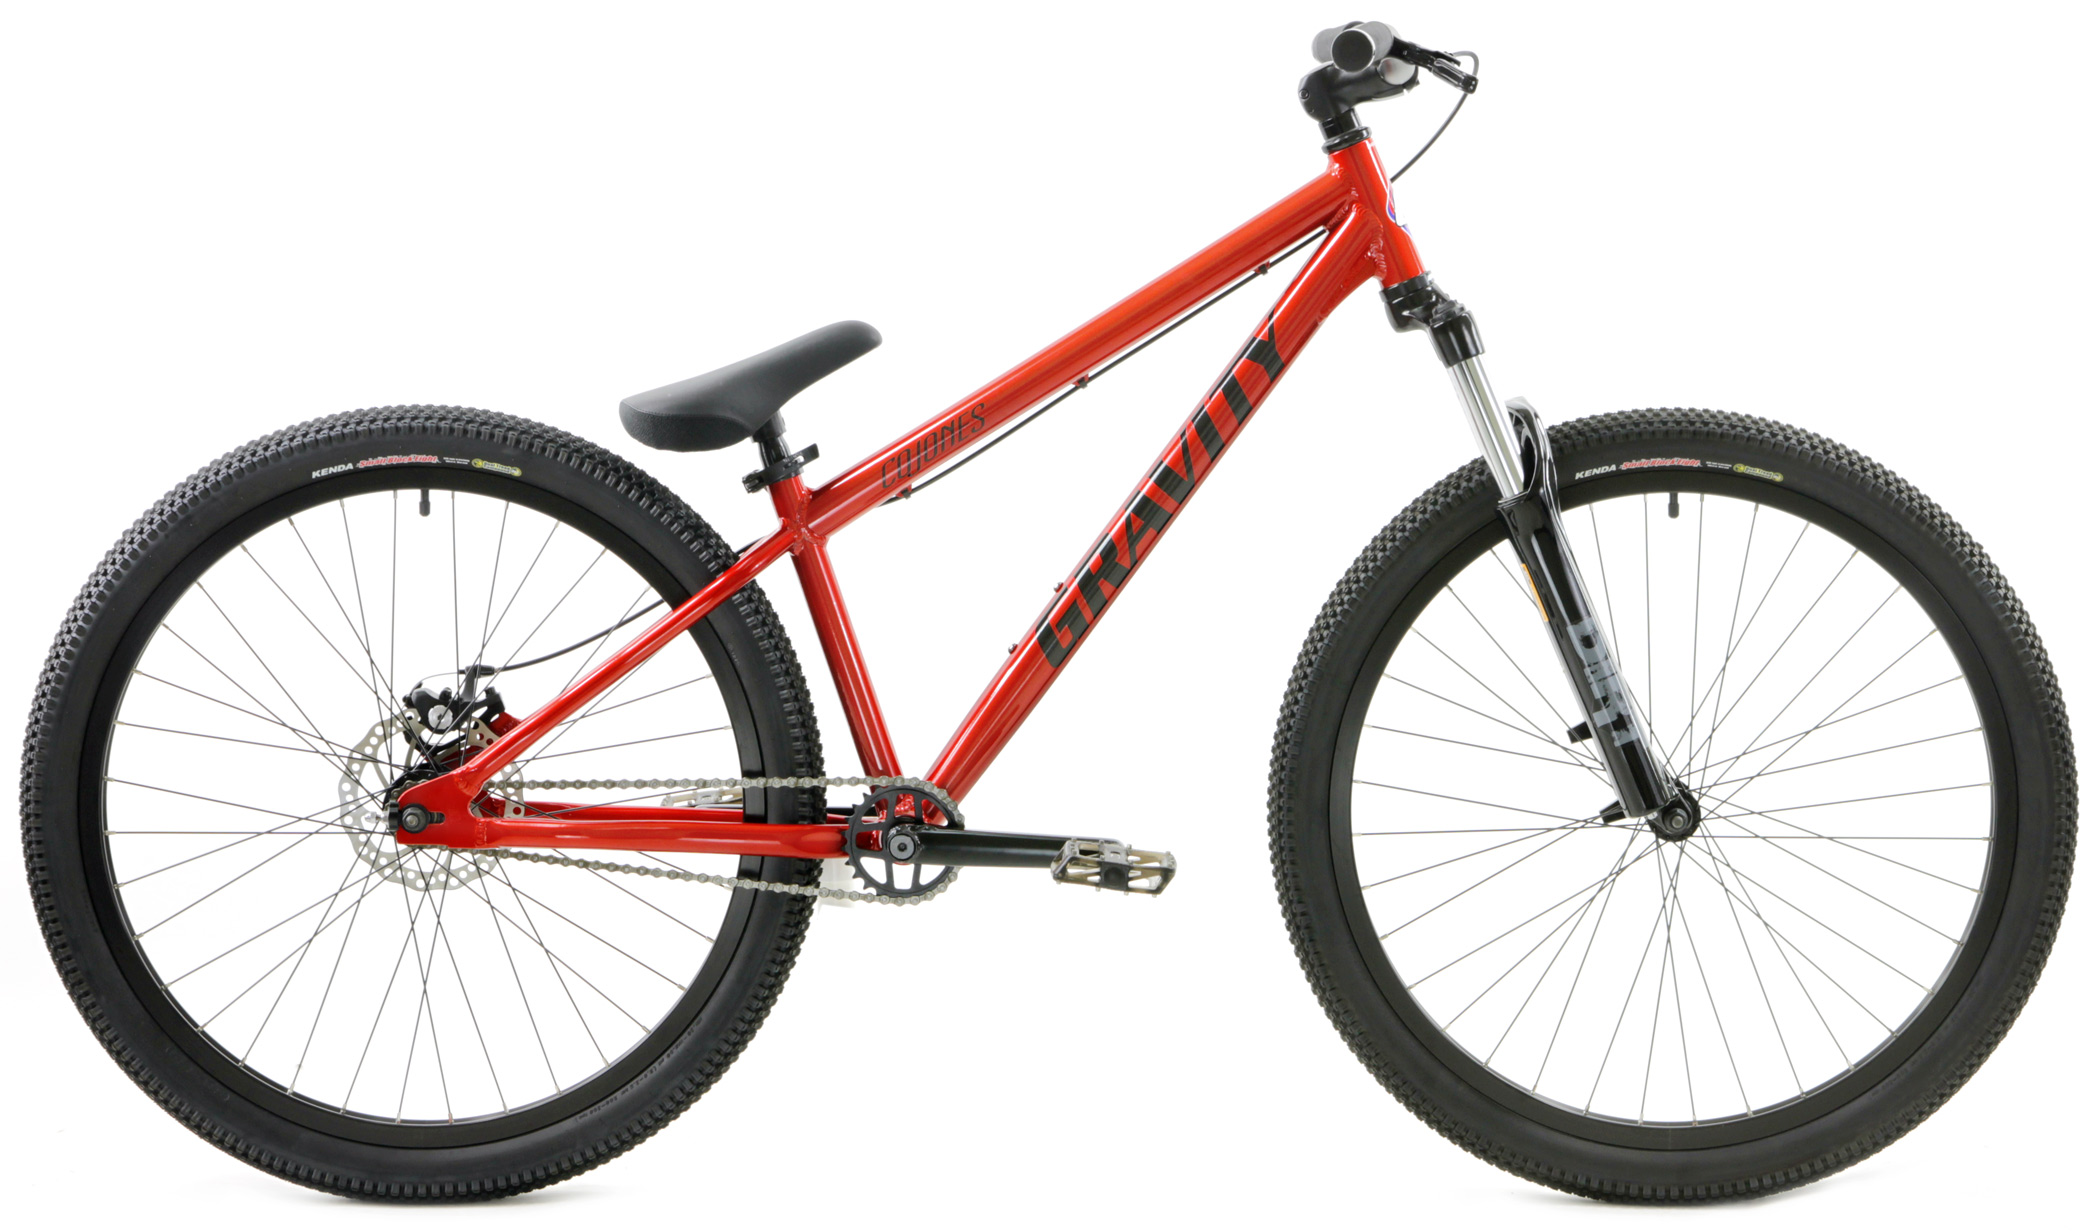 Bikes Gravity Cojones Expert Dirt Jumper with Disc Brake Bike Image